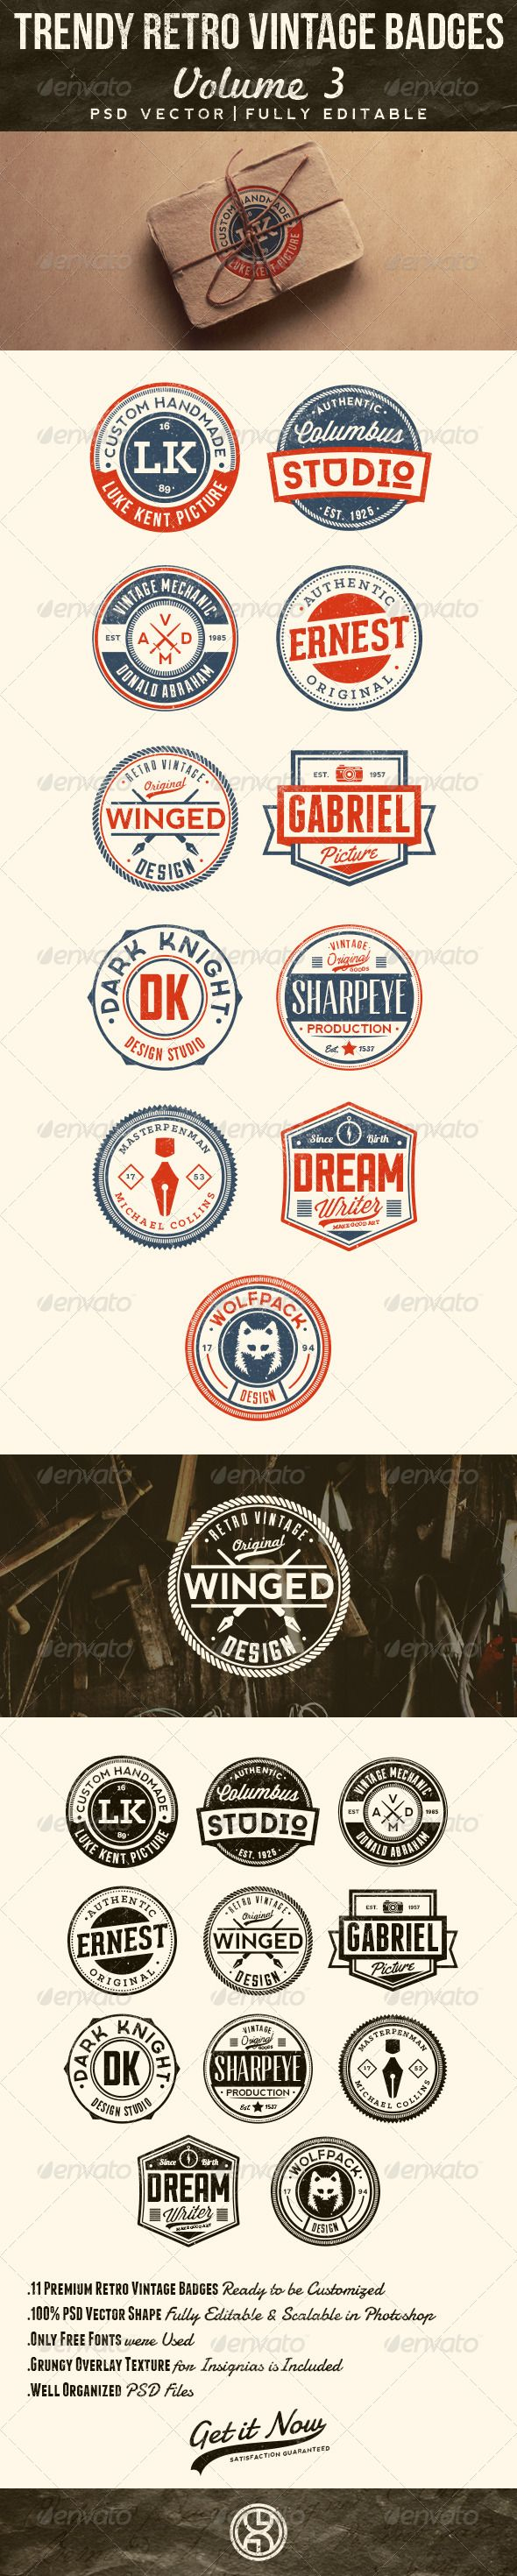 Trendy Retro Vintage Badges Template | Buy and Download: http://graphicriver.net/item/trendy-retro-vintage-badges-volume-3/7641567?WT.ac=category_thumb&WT.z_author=mining&ref=ksioks